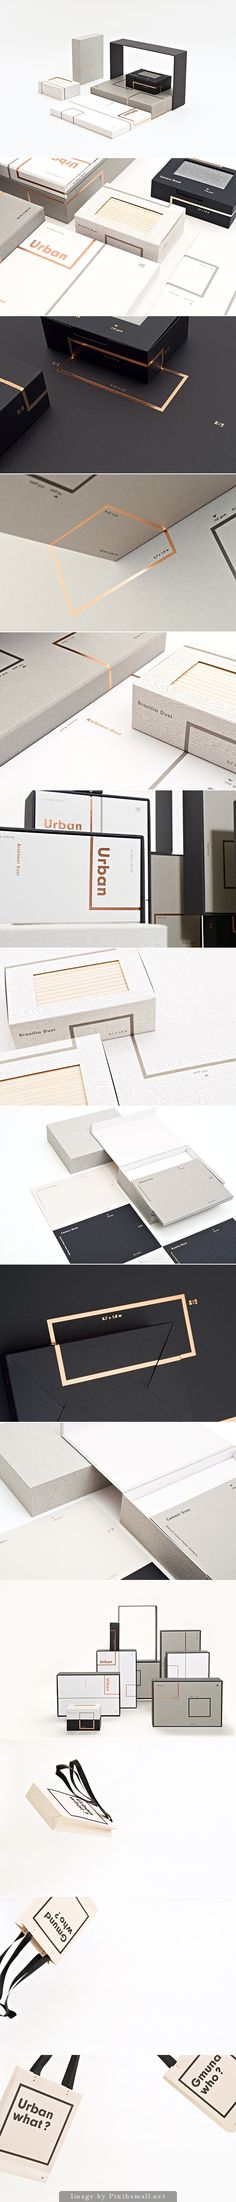 Urban modern box packaging design ideas. I love the monochromatic color pallet with gold foil accent.